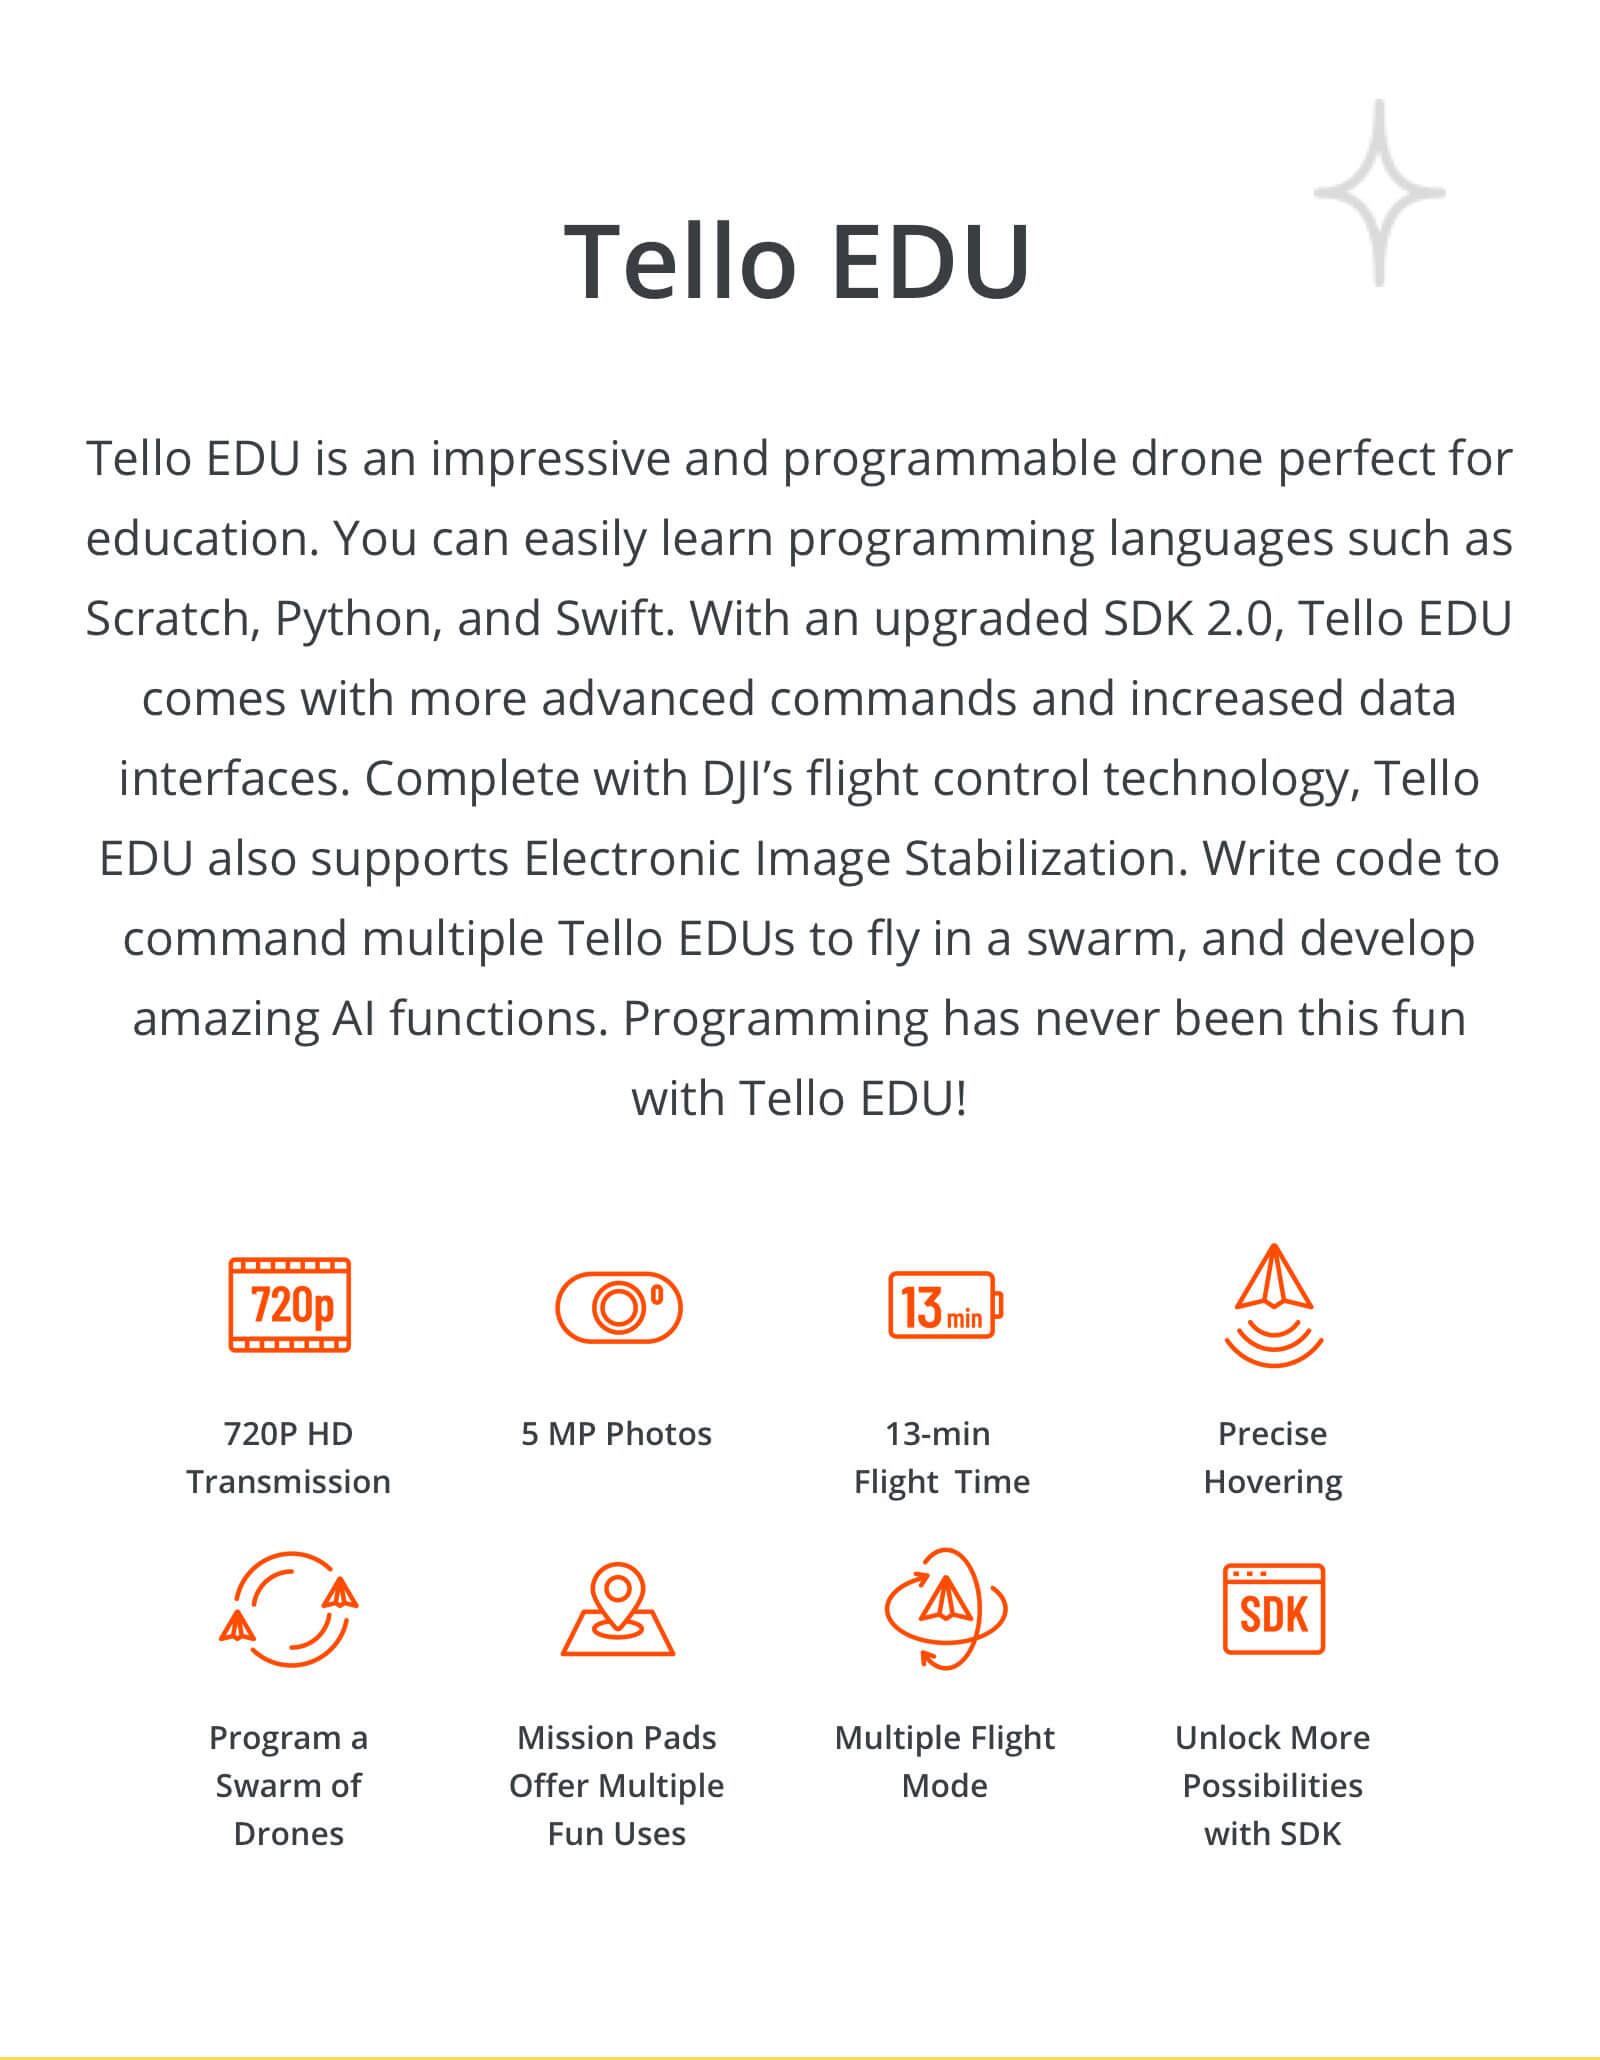 tello-edu-en-800-copy-2_02.jpg